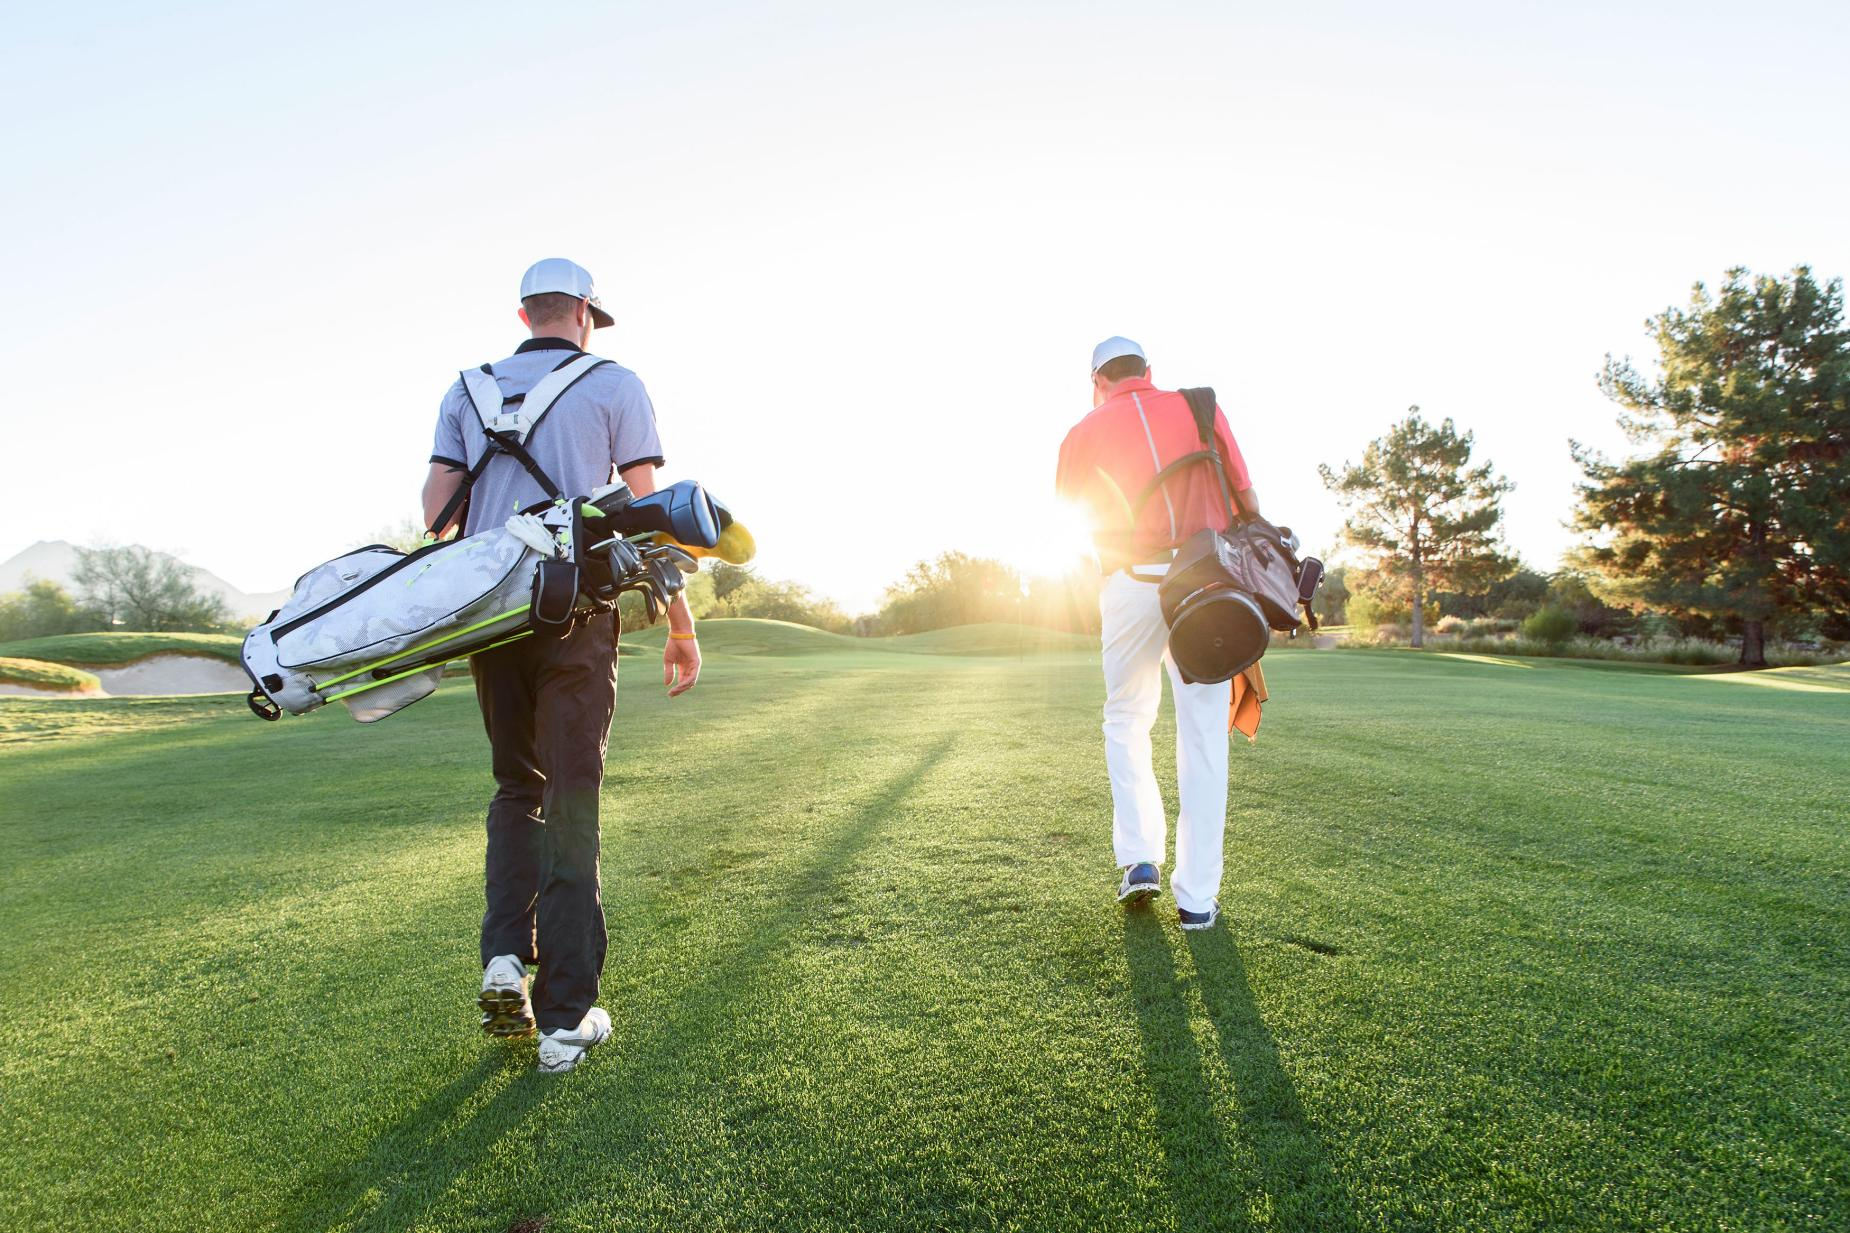 golfers-playing-near-sunset-walking-down-fairway.jpg